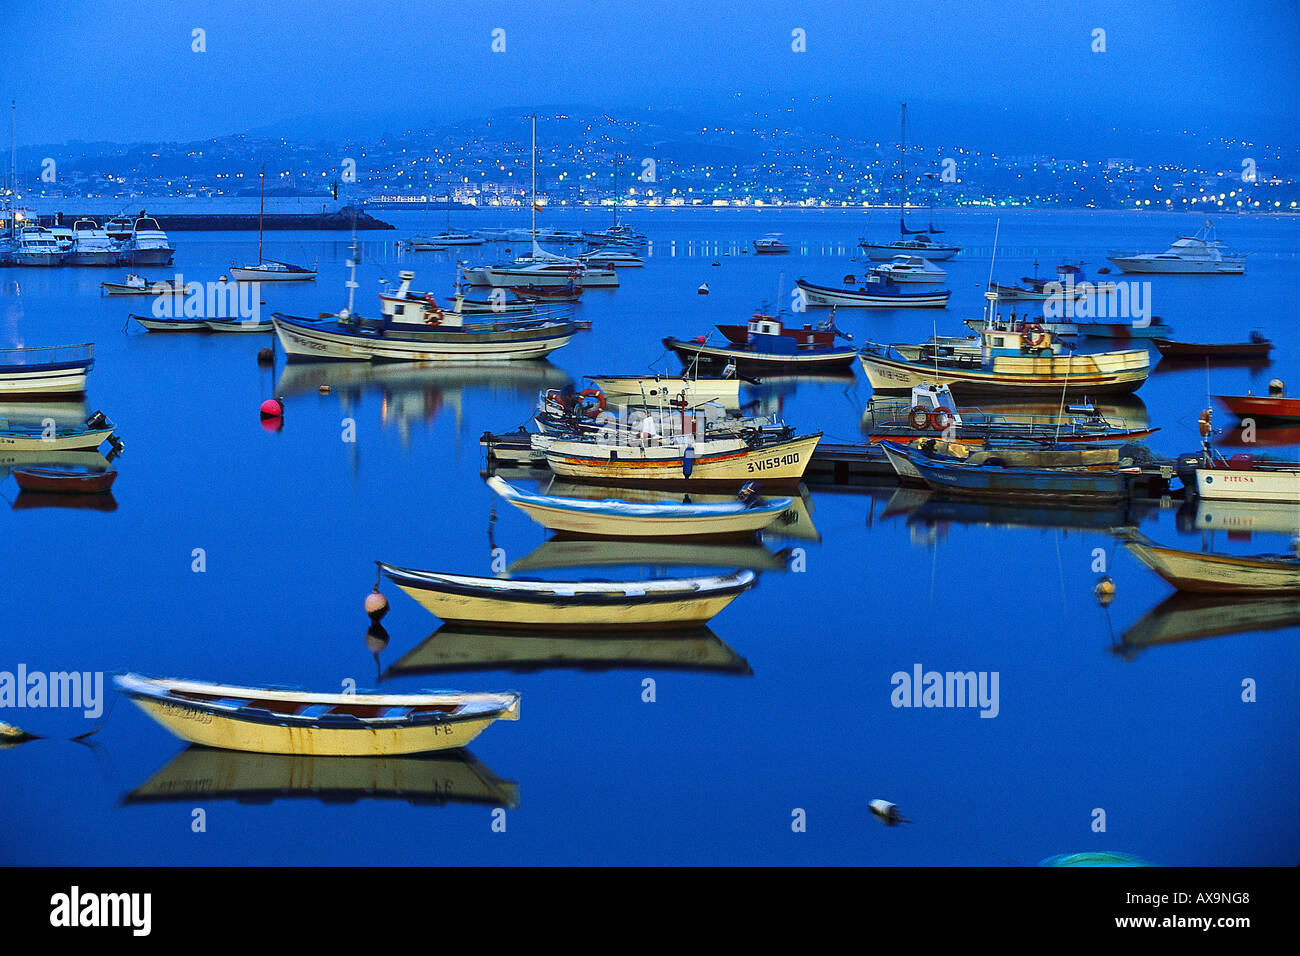 Fishing boats in the harbour at night, Ria de Baiona, Pontevedra, Galicia, Spain Stock Foto